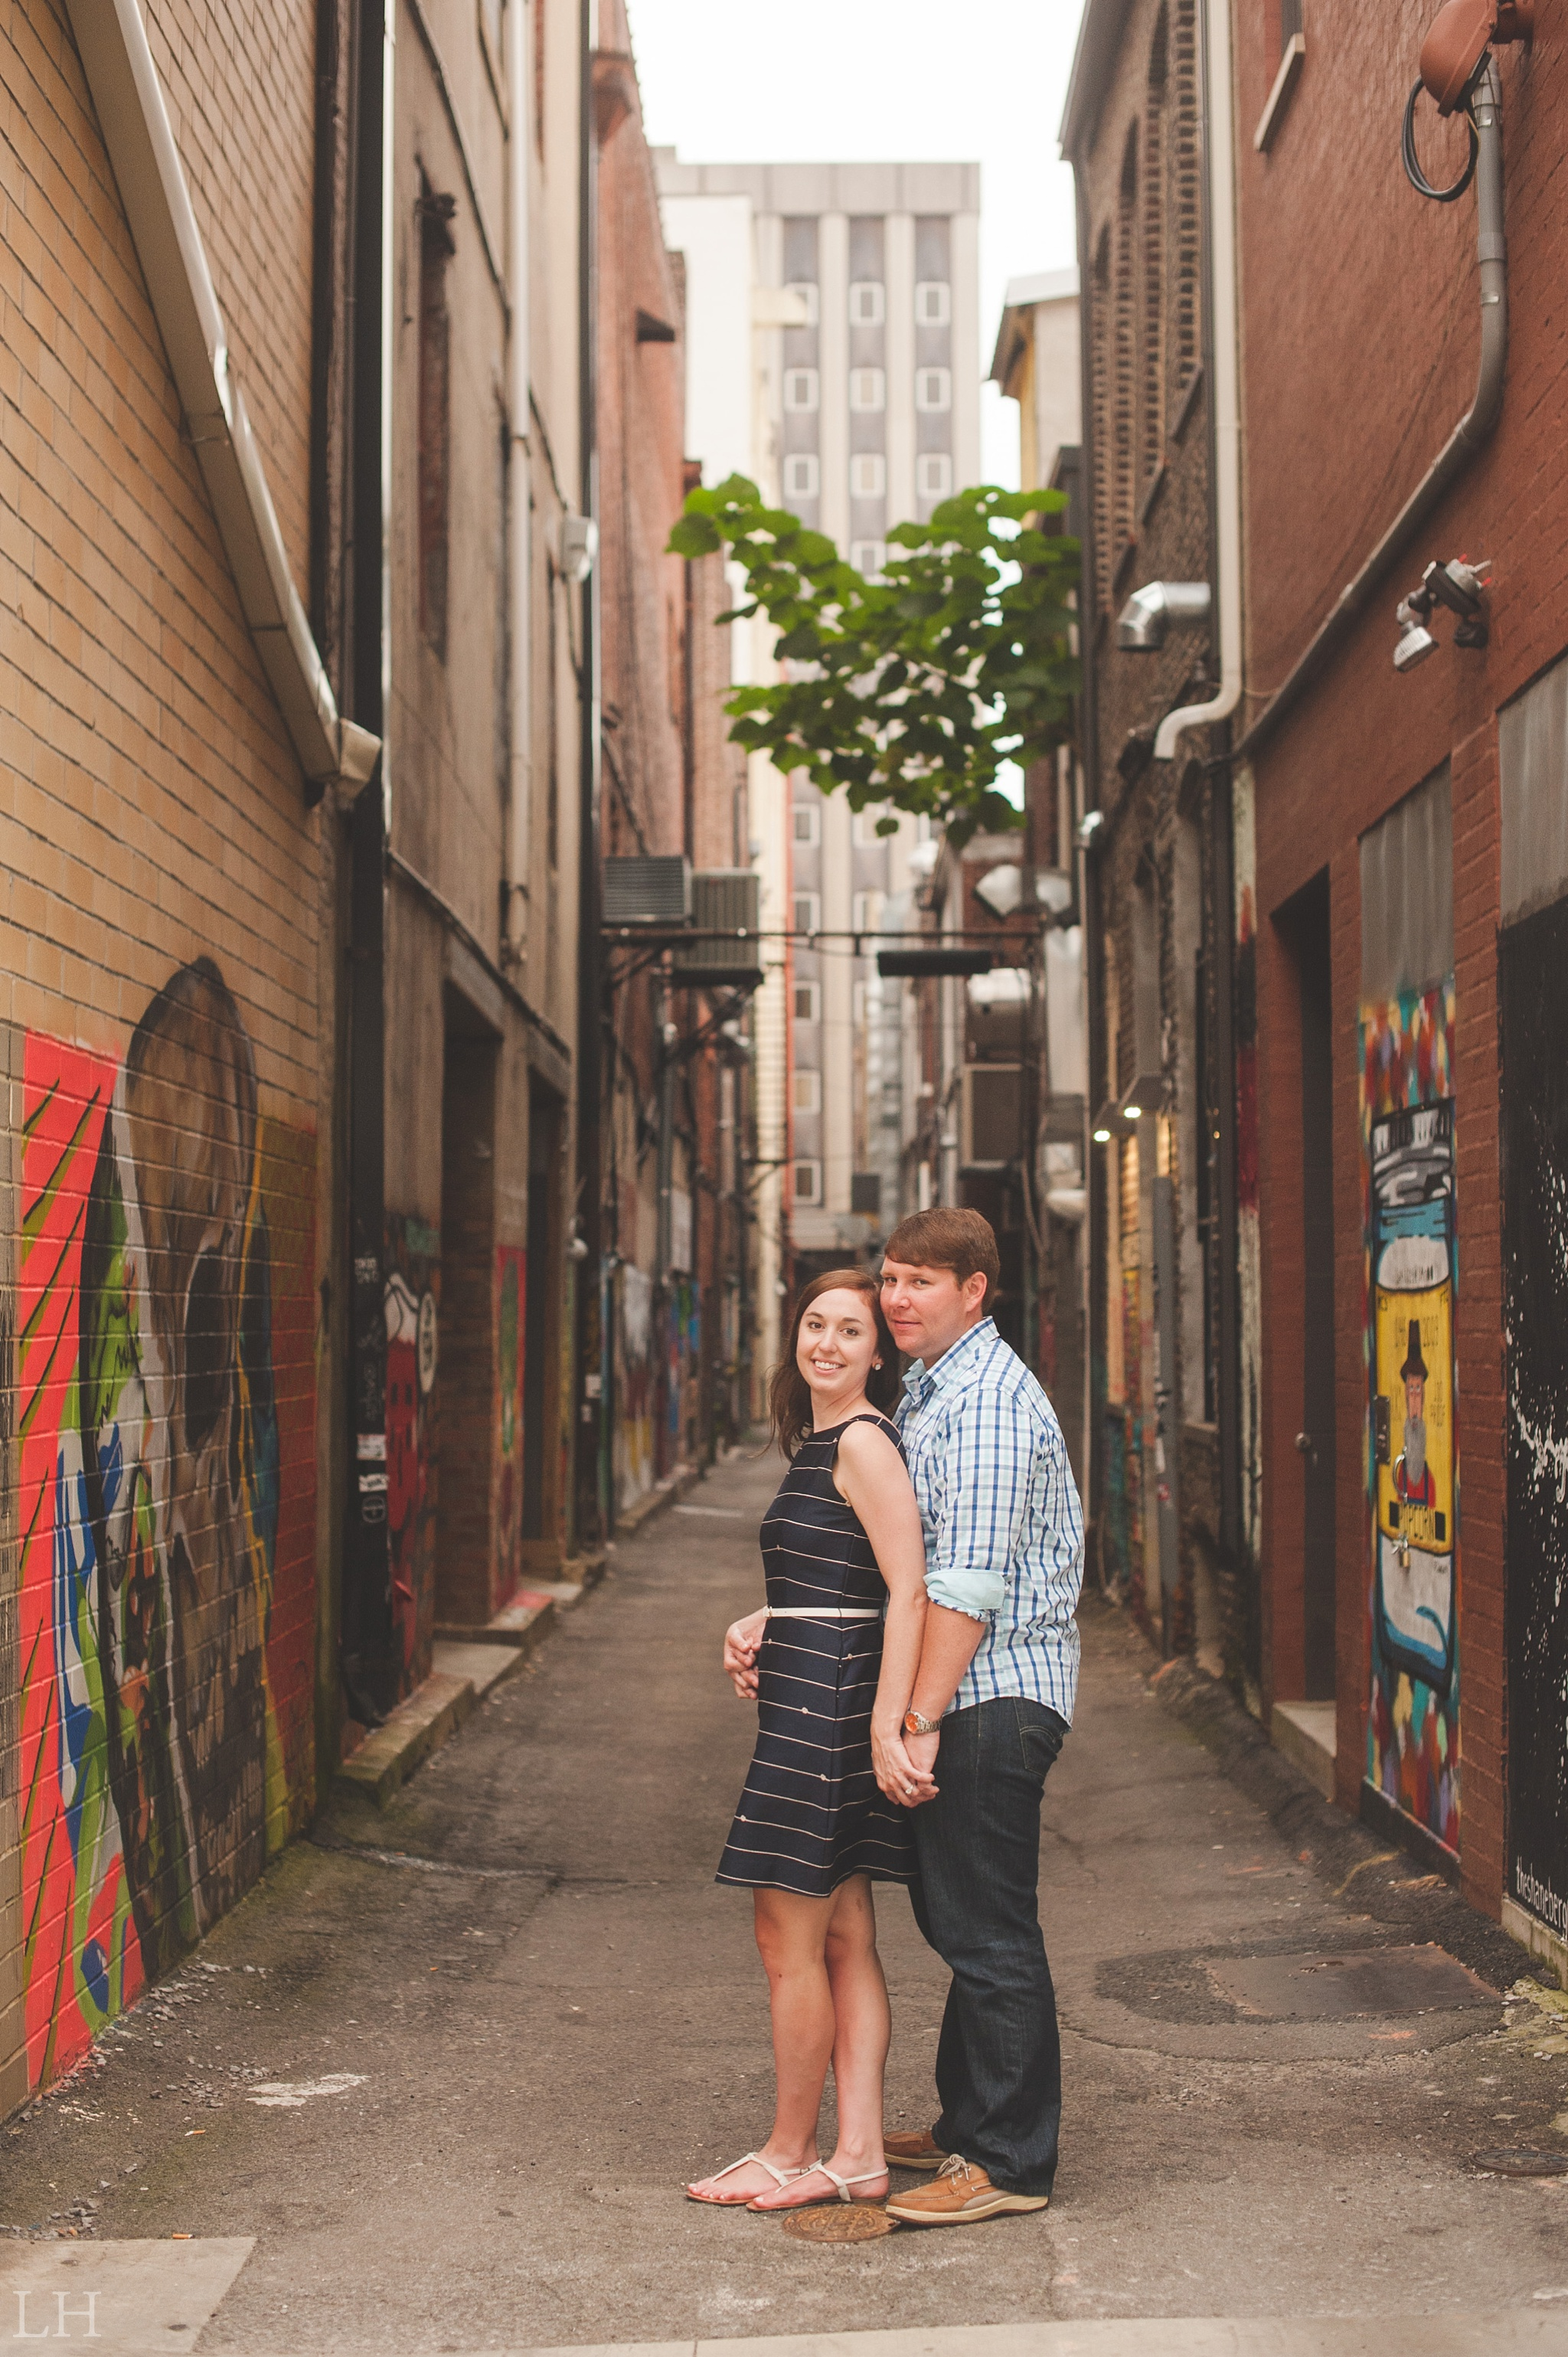 DowntownKnoxvilleEngagementSession131.jpg